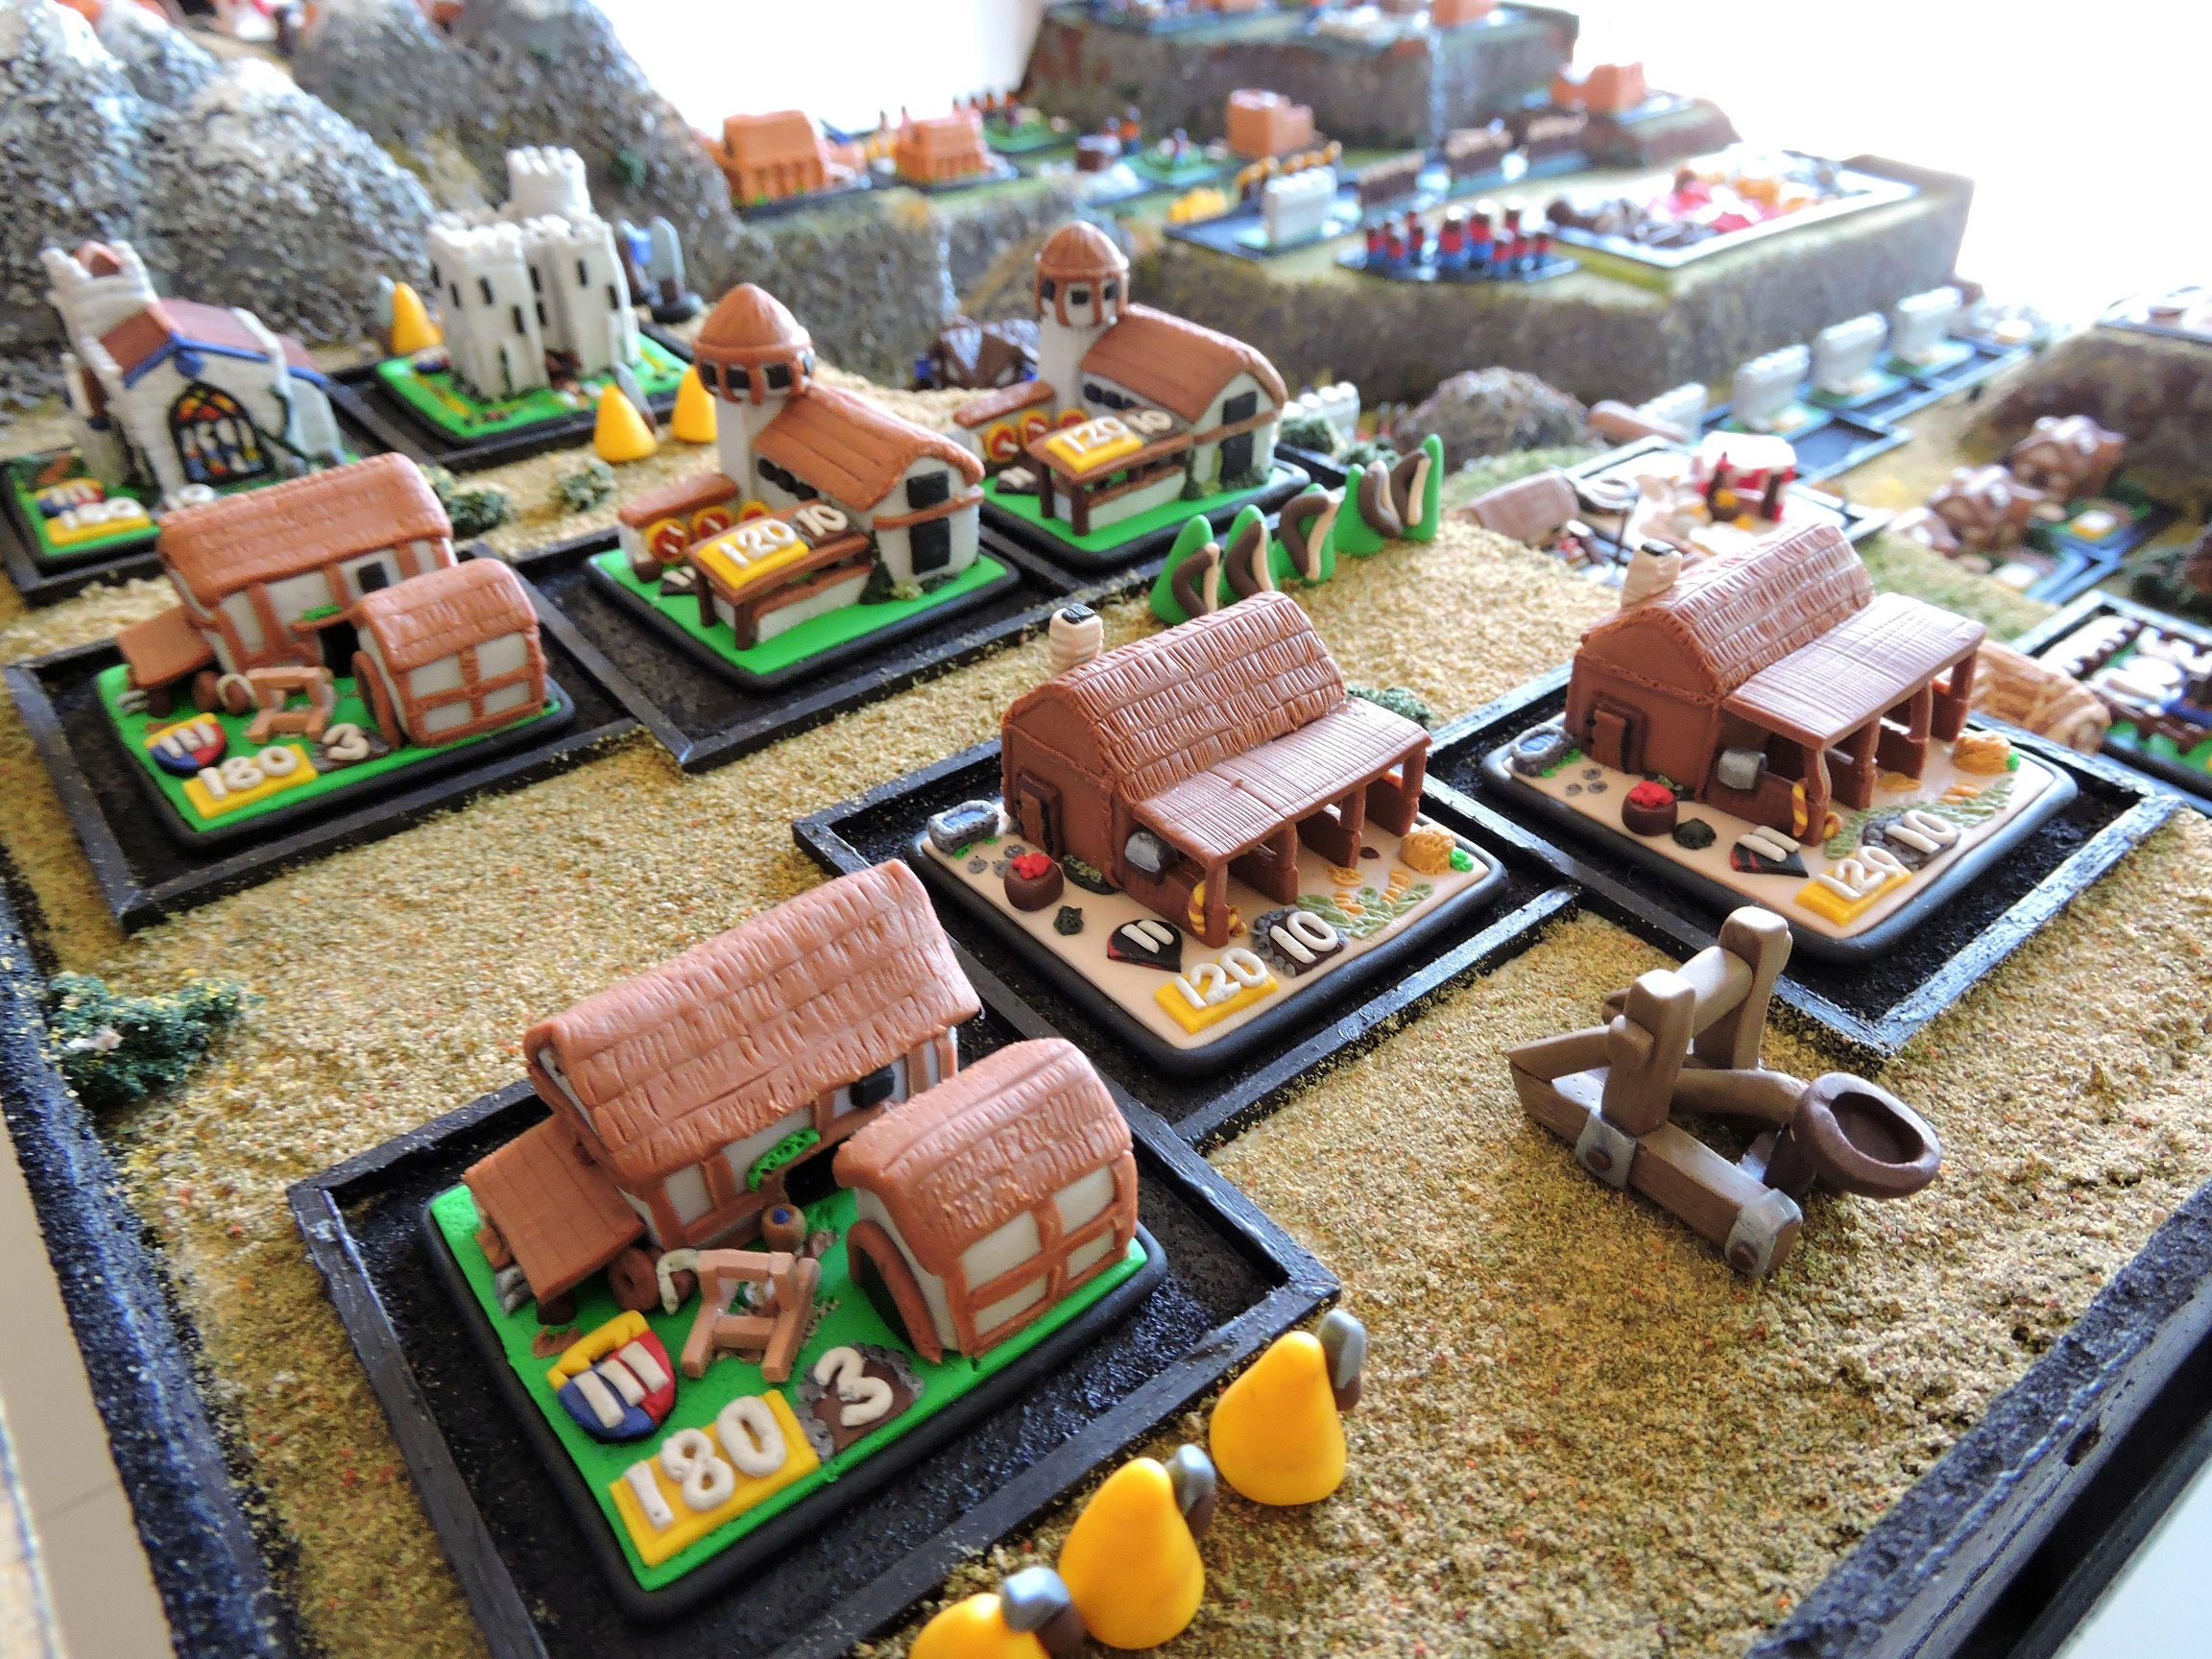 Age of Empires Board Game Battle Archery Range Stables and Siege Workshops